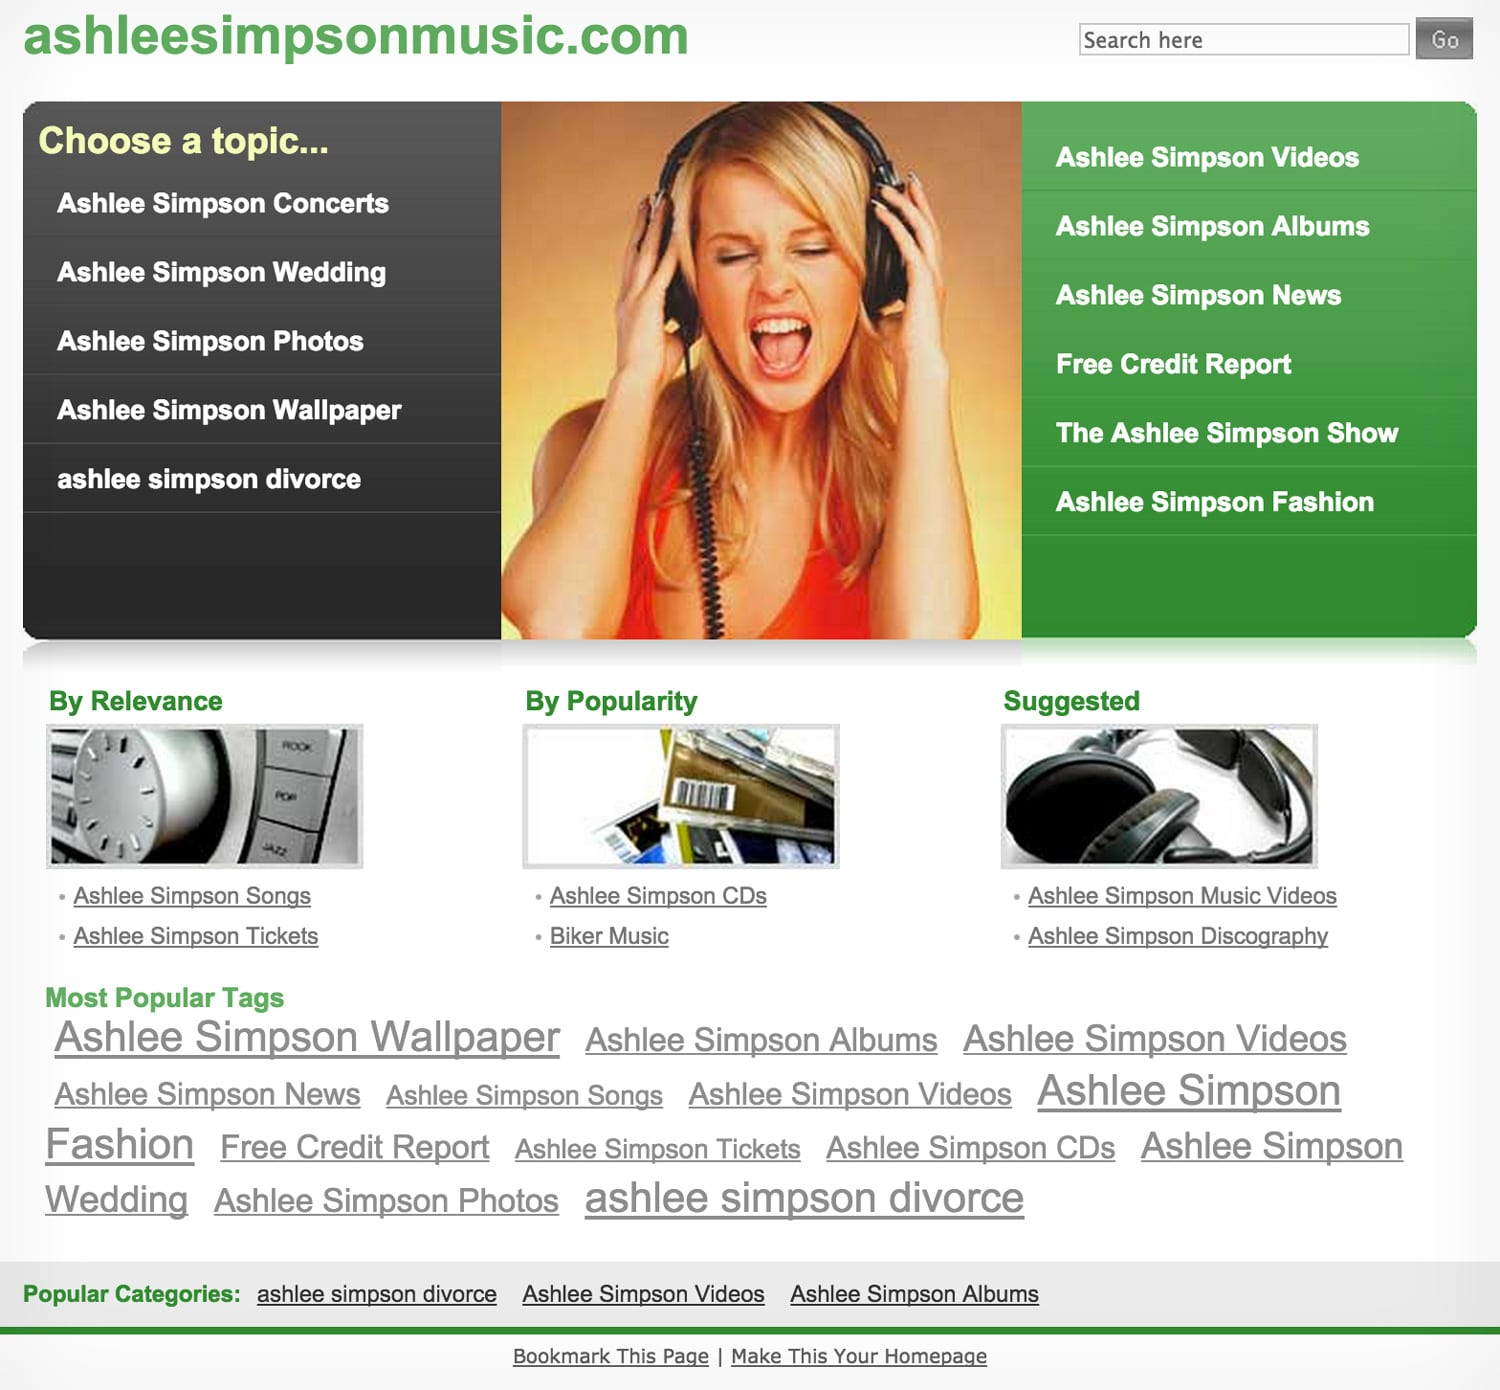 Ashleesimpsonmusic.com